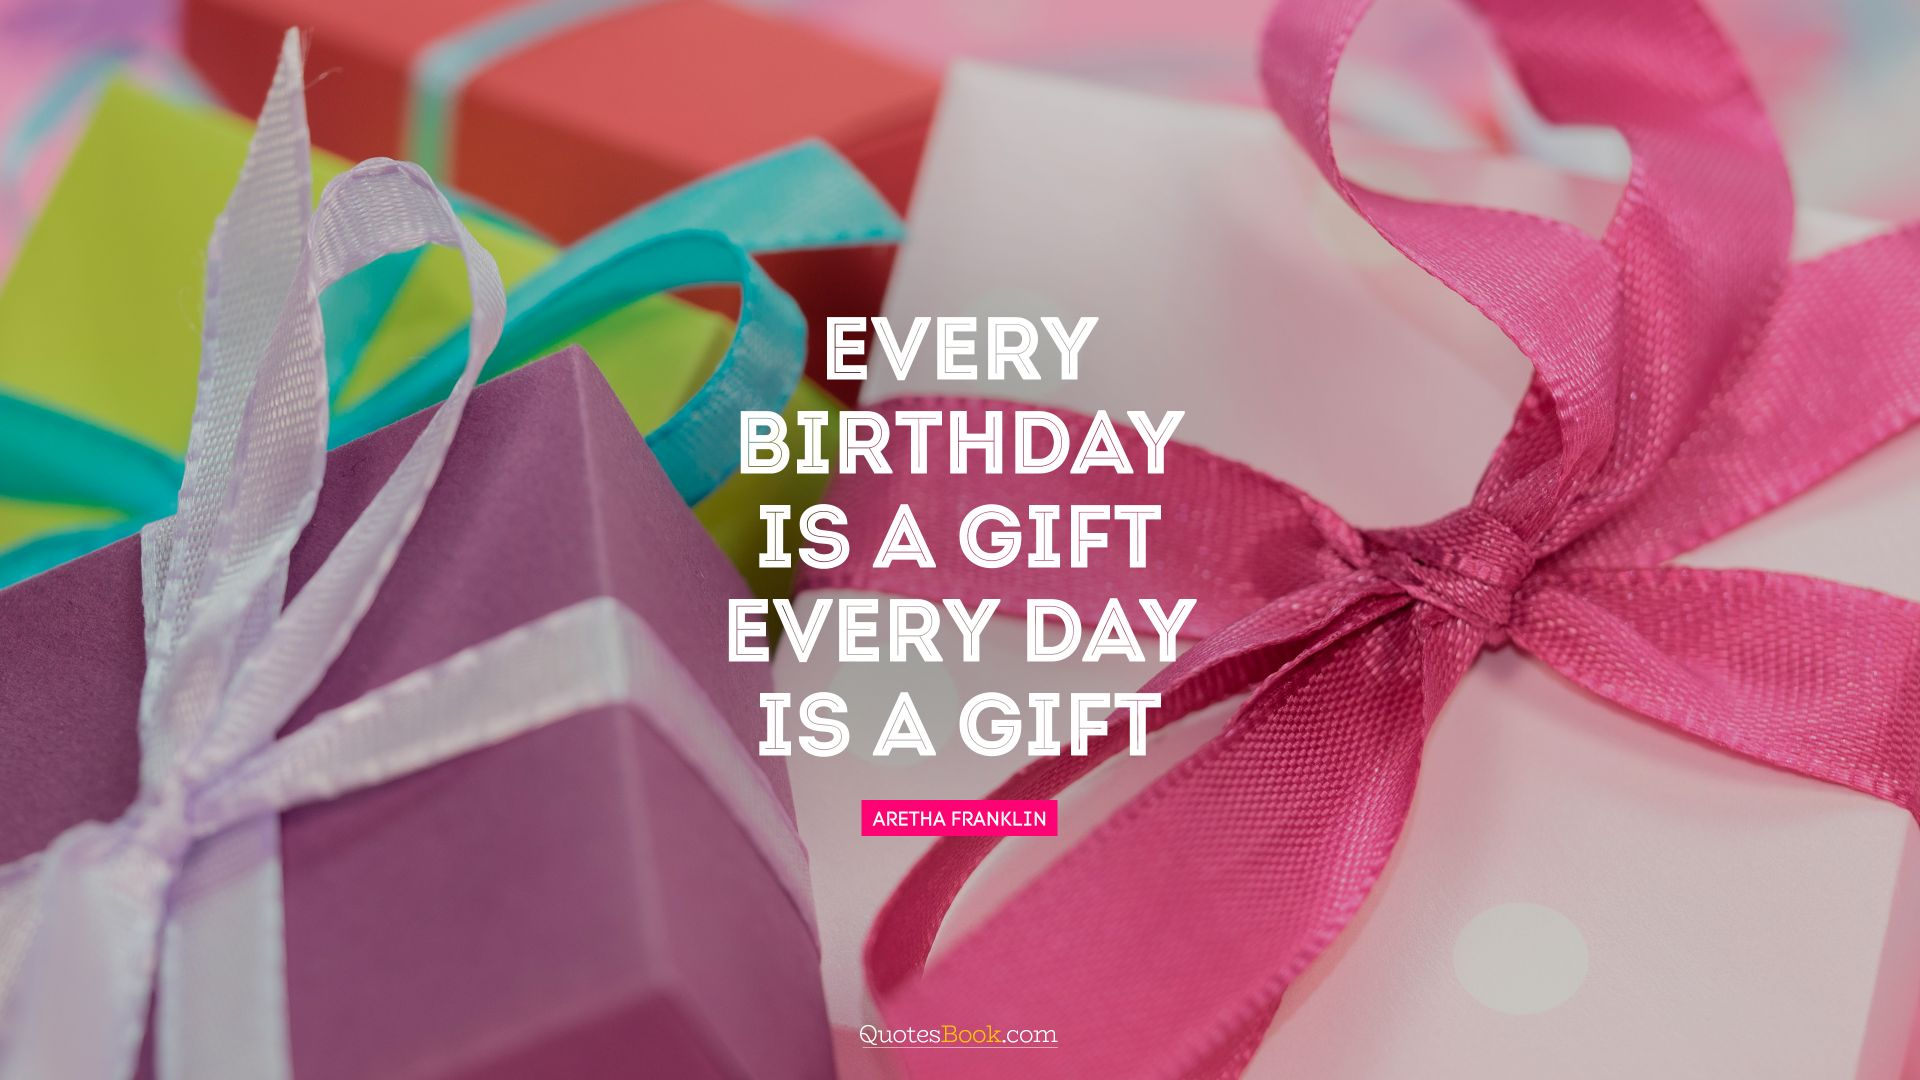 Every birthday is a gift. Every day is a gift. - Quote by Aretha Franklin